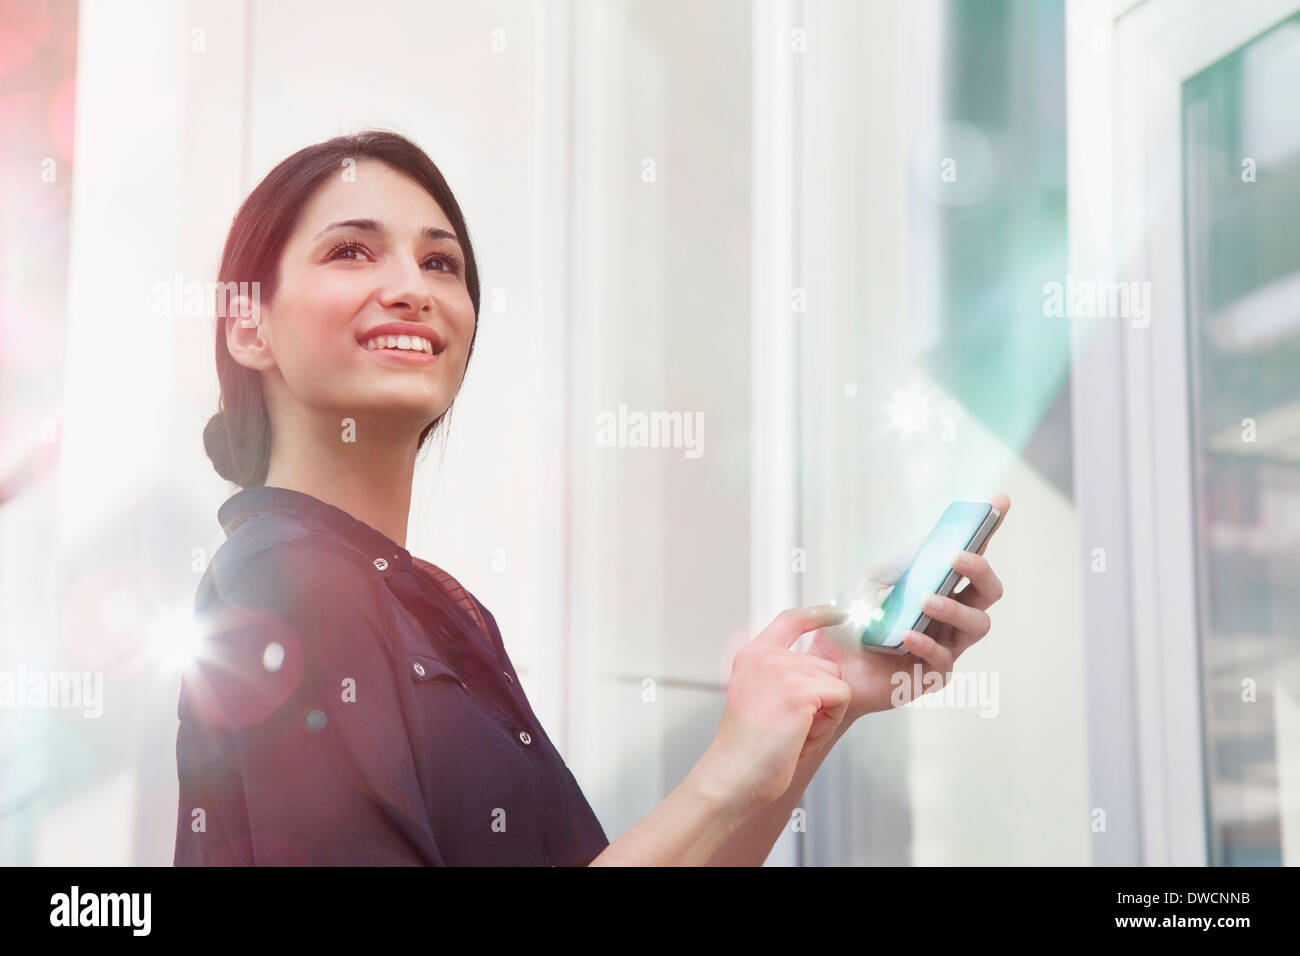 Young businesswoman holding smartphone with lights coming out of it - Stock Image